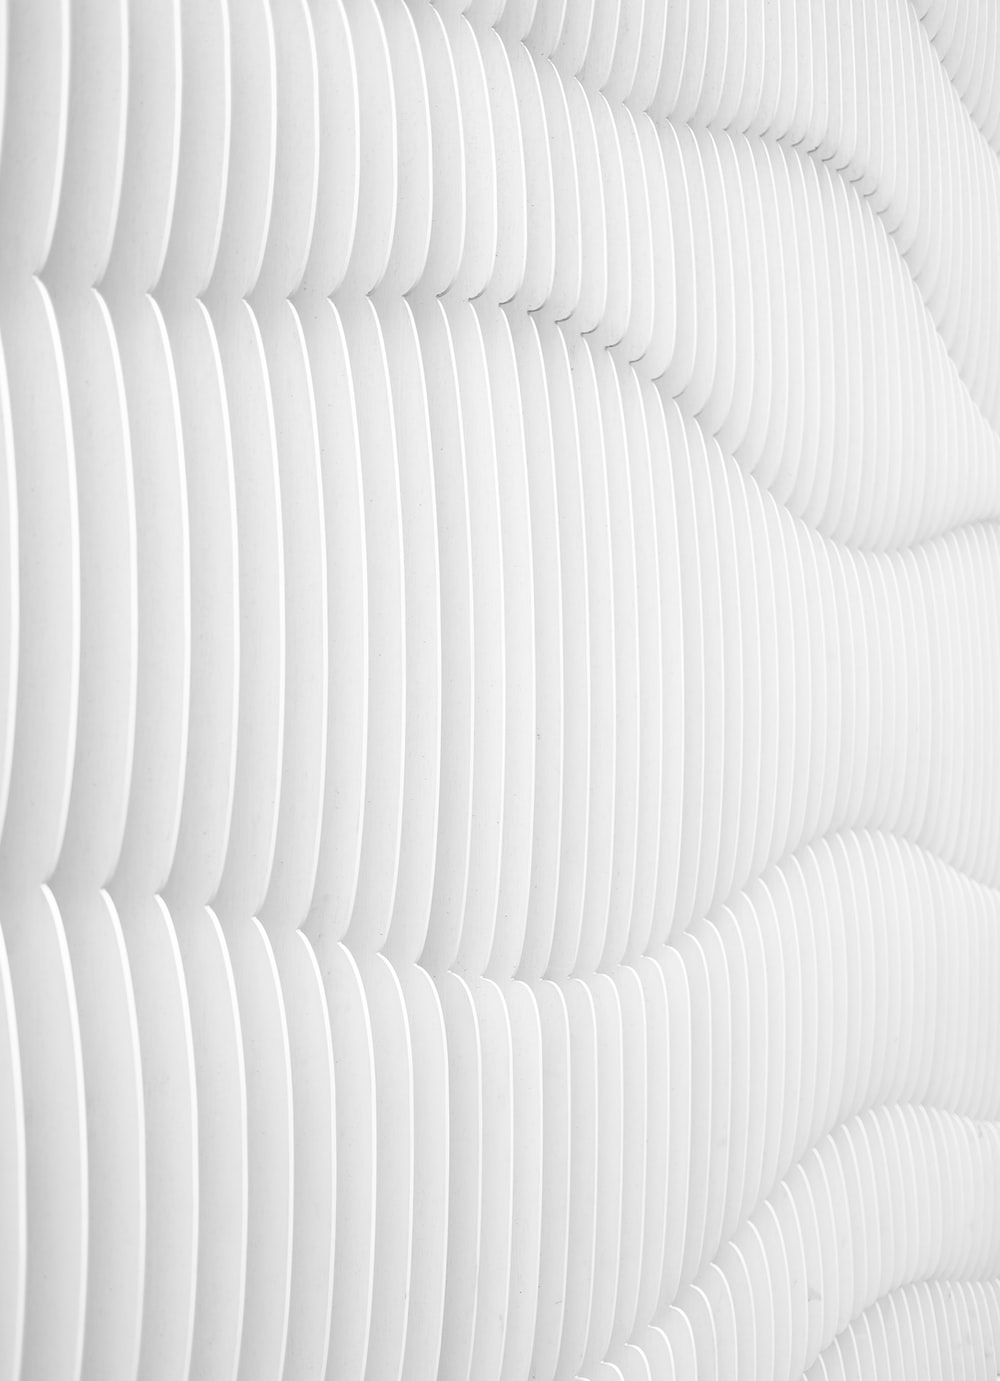 white textured wall